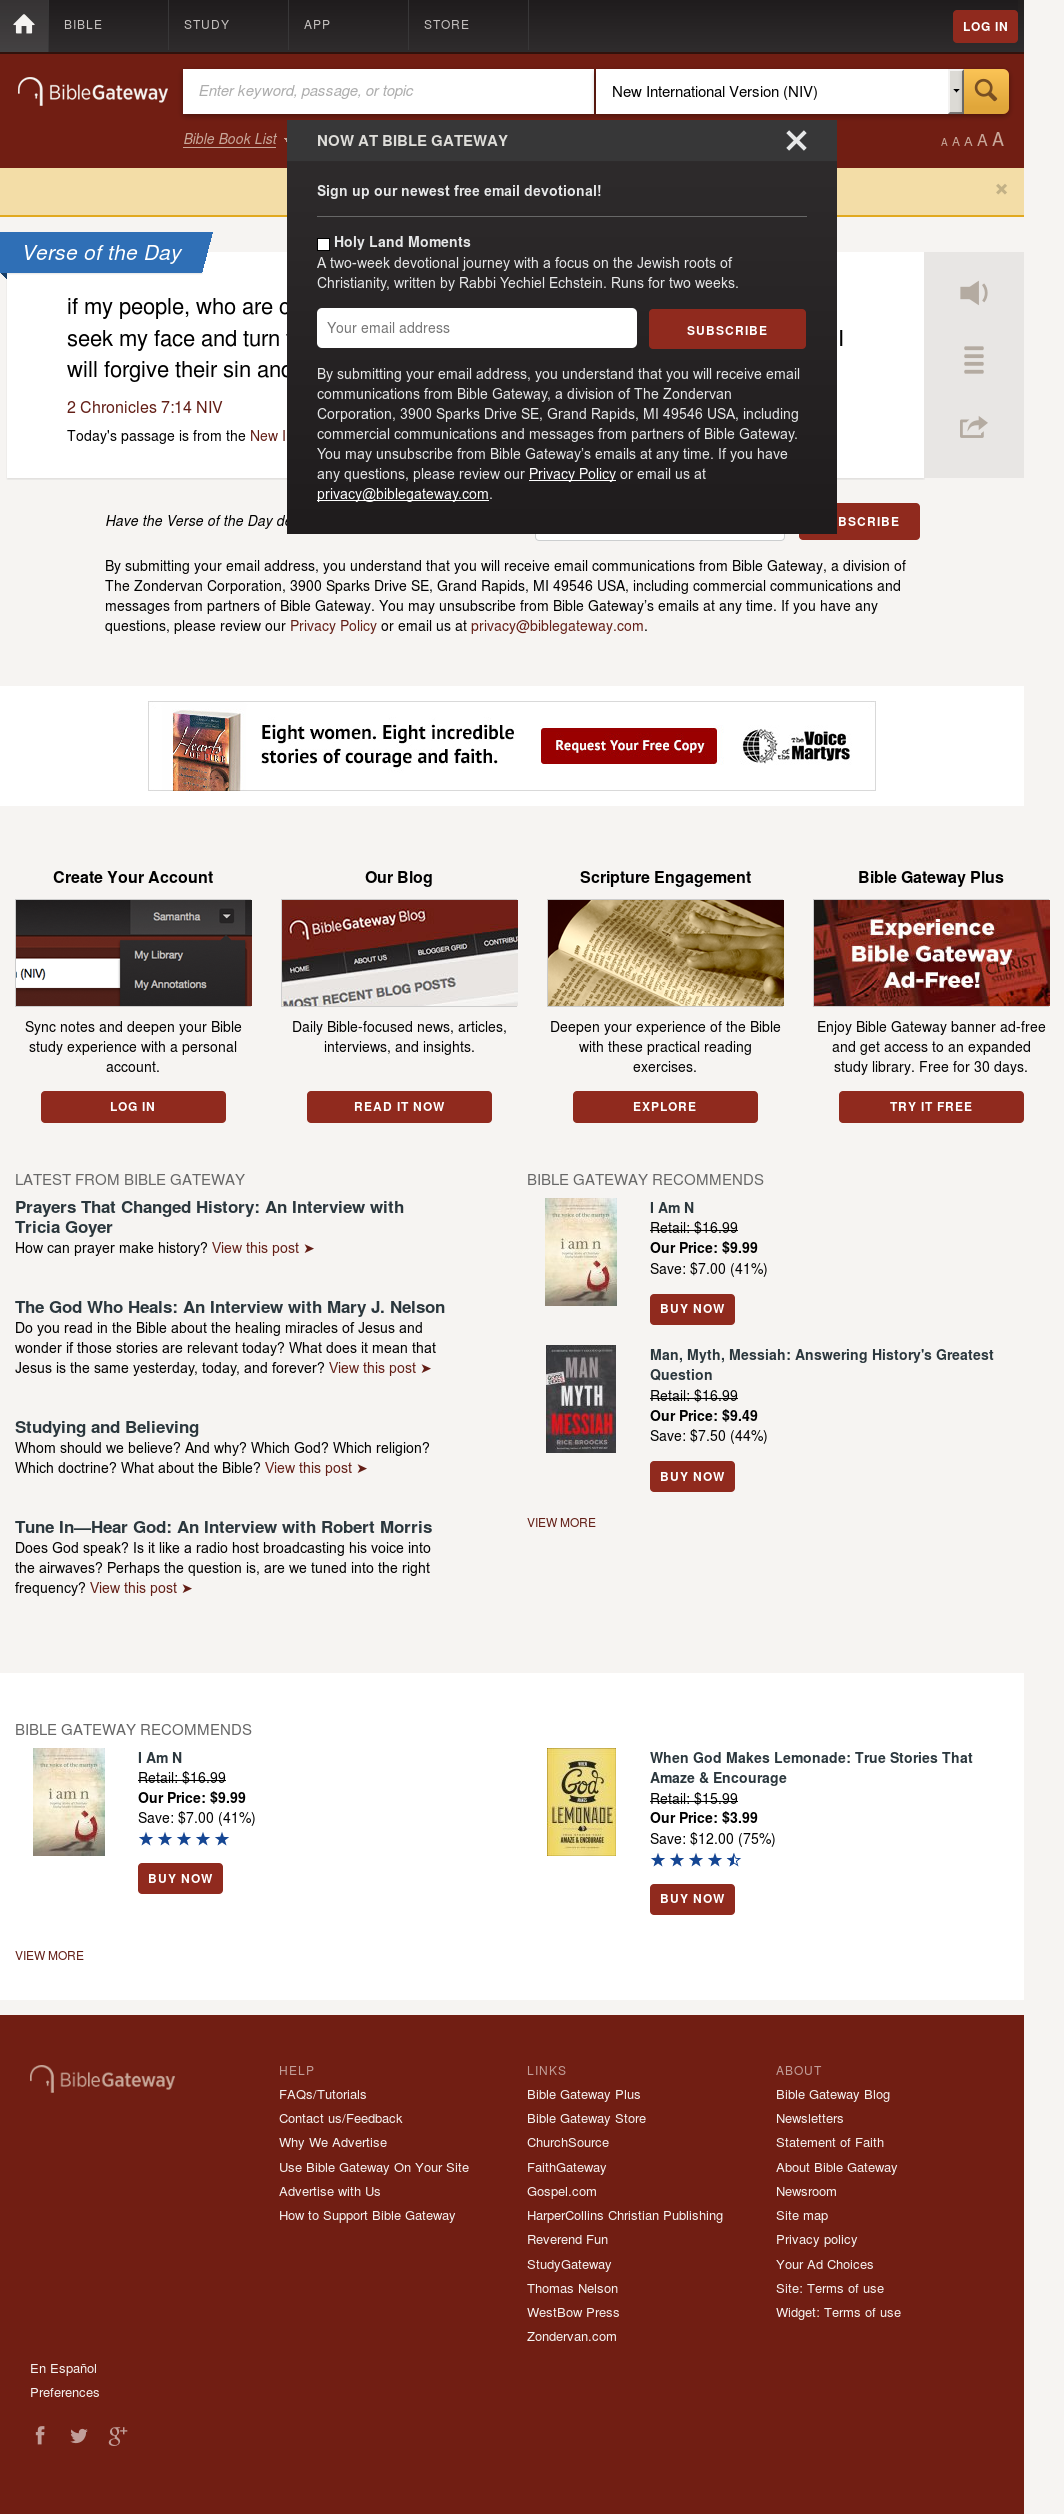 Owler Reports - BibleGateway Blog James Moffatt on The New Testament